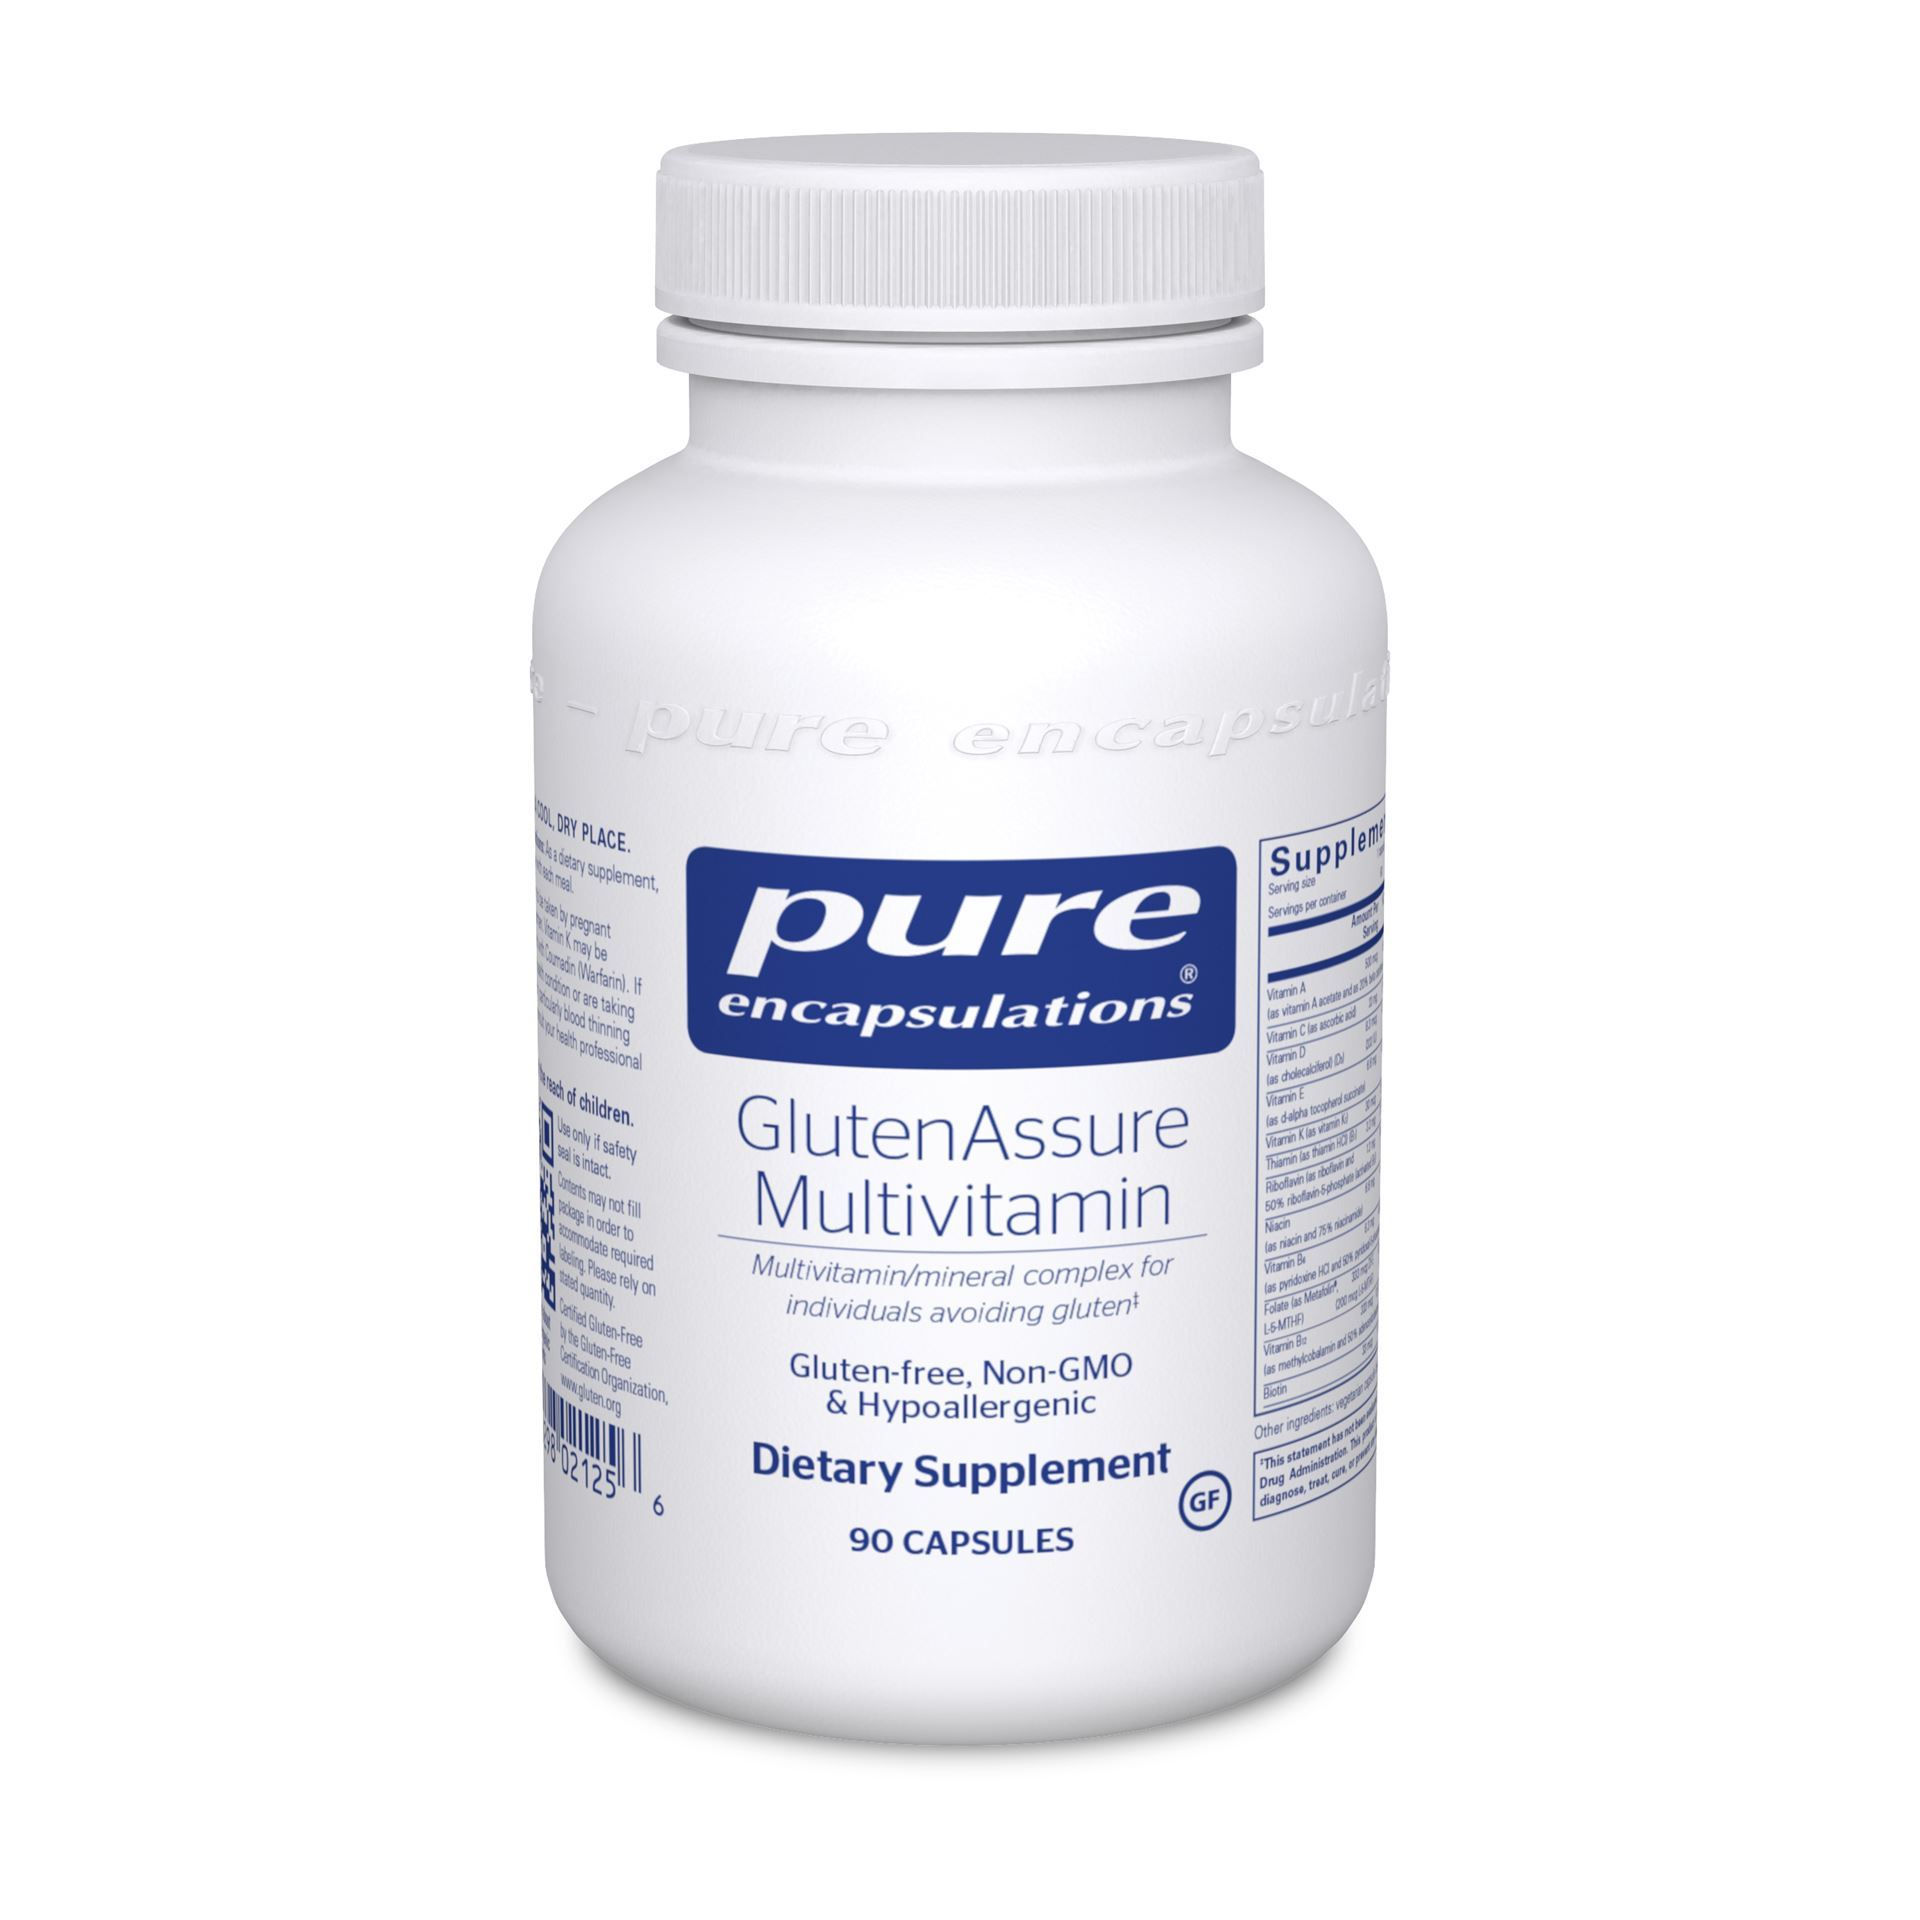 Buy Online GlutenAssure Multivitamin @40.90 by Pure Encapsulations